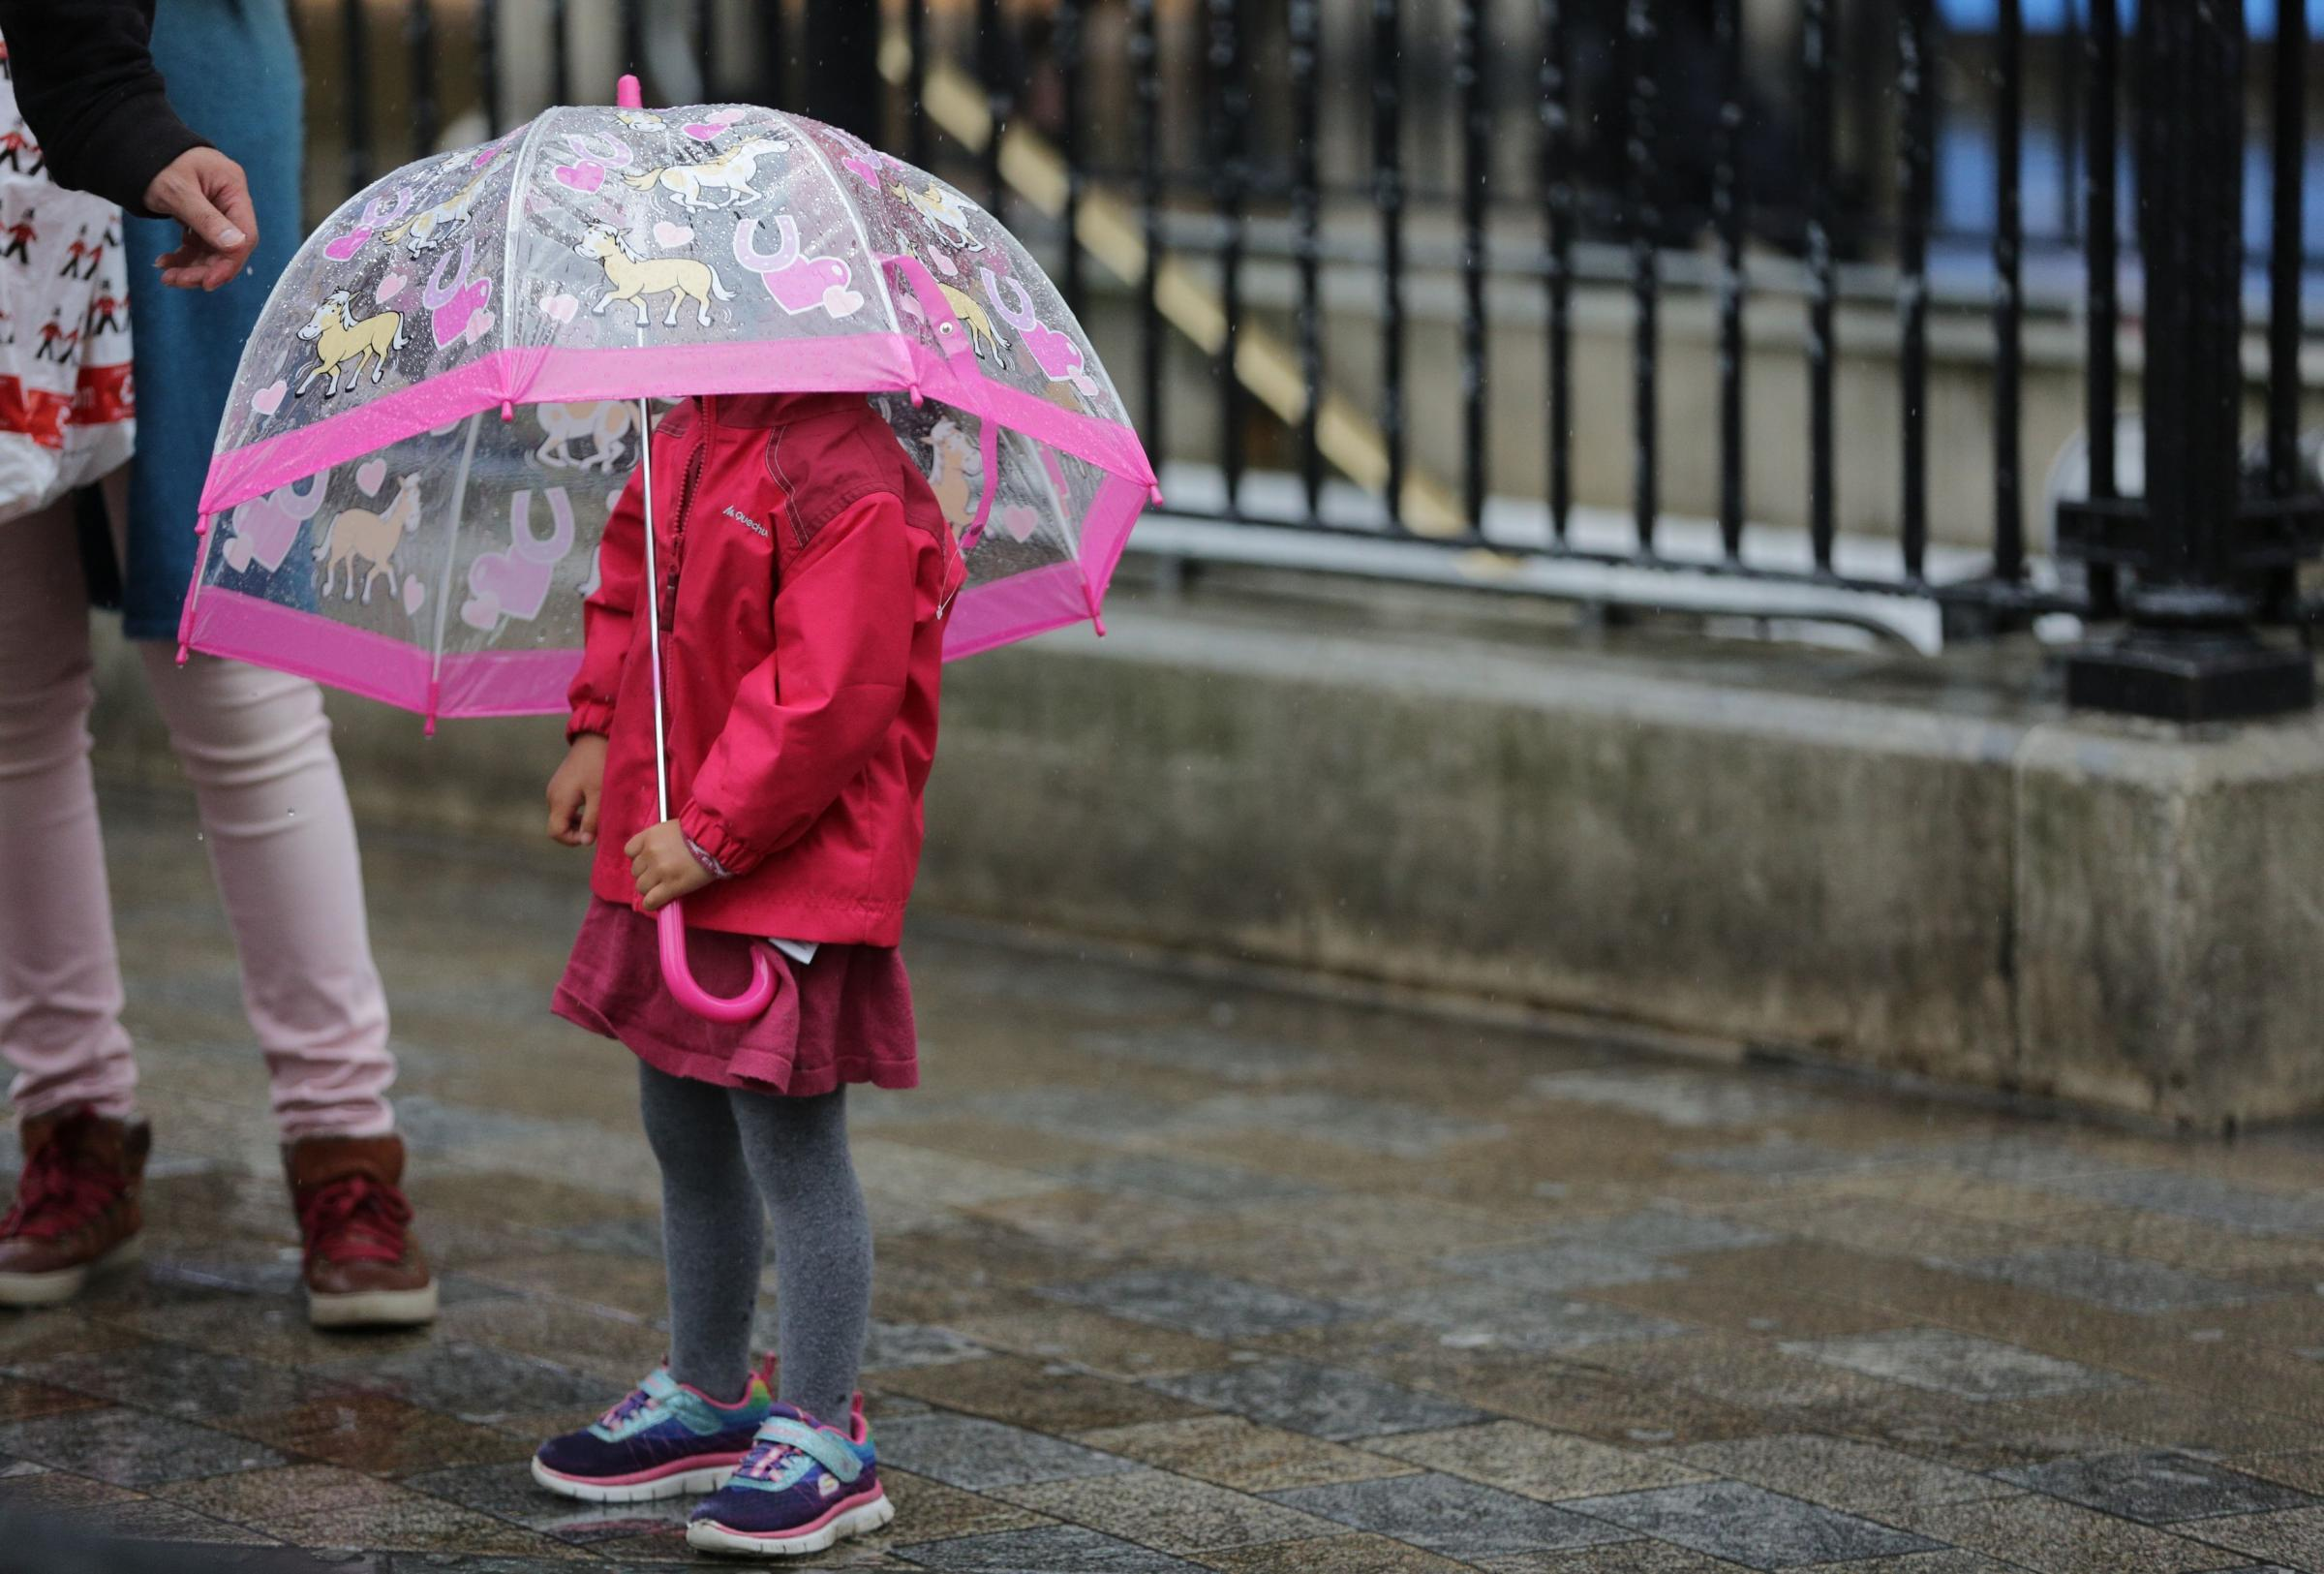 A child shelters under an umbrella. Picture: Daniel Leal-Olivas / PA Wire